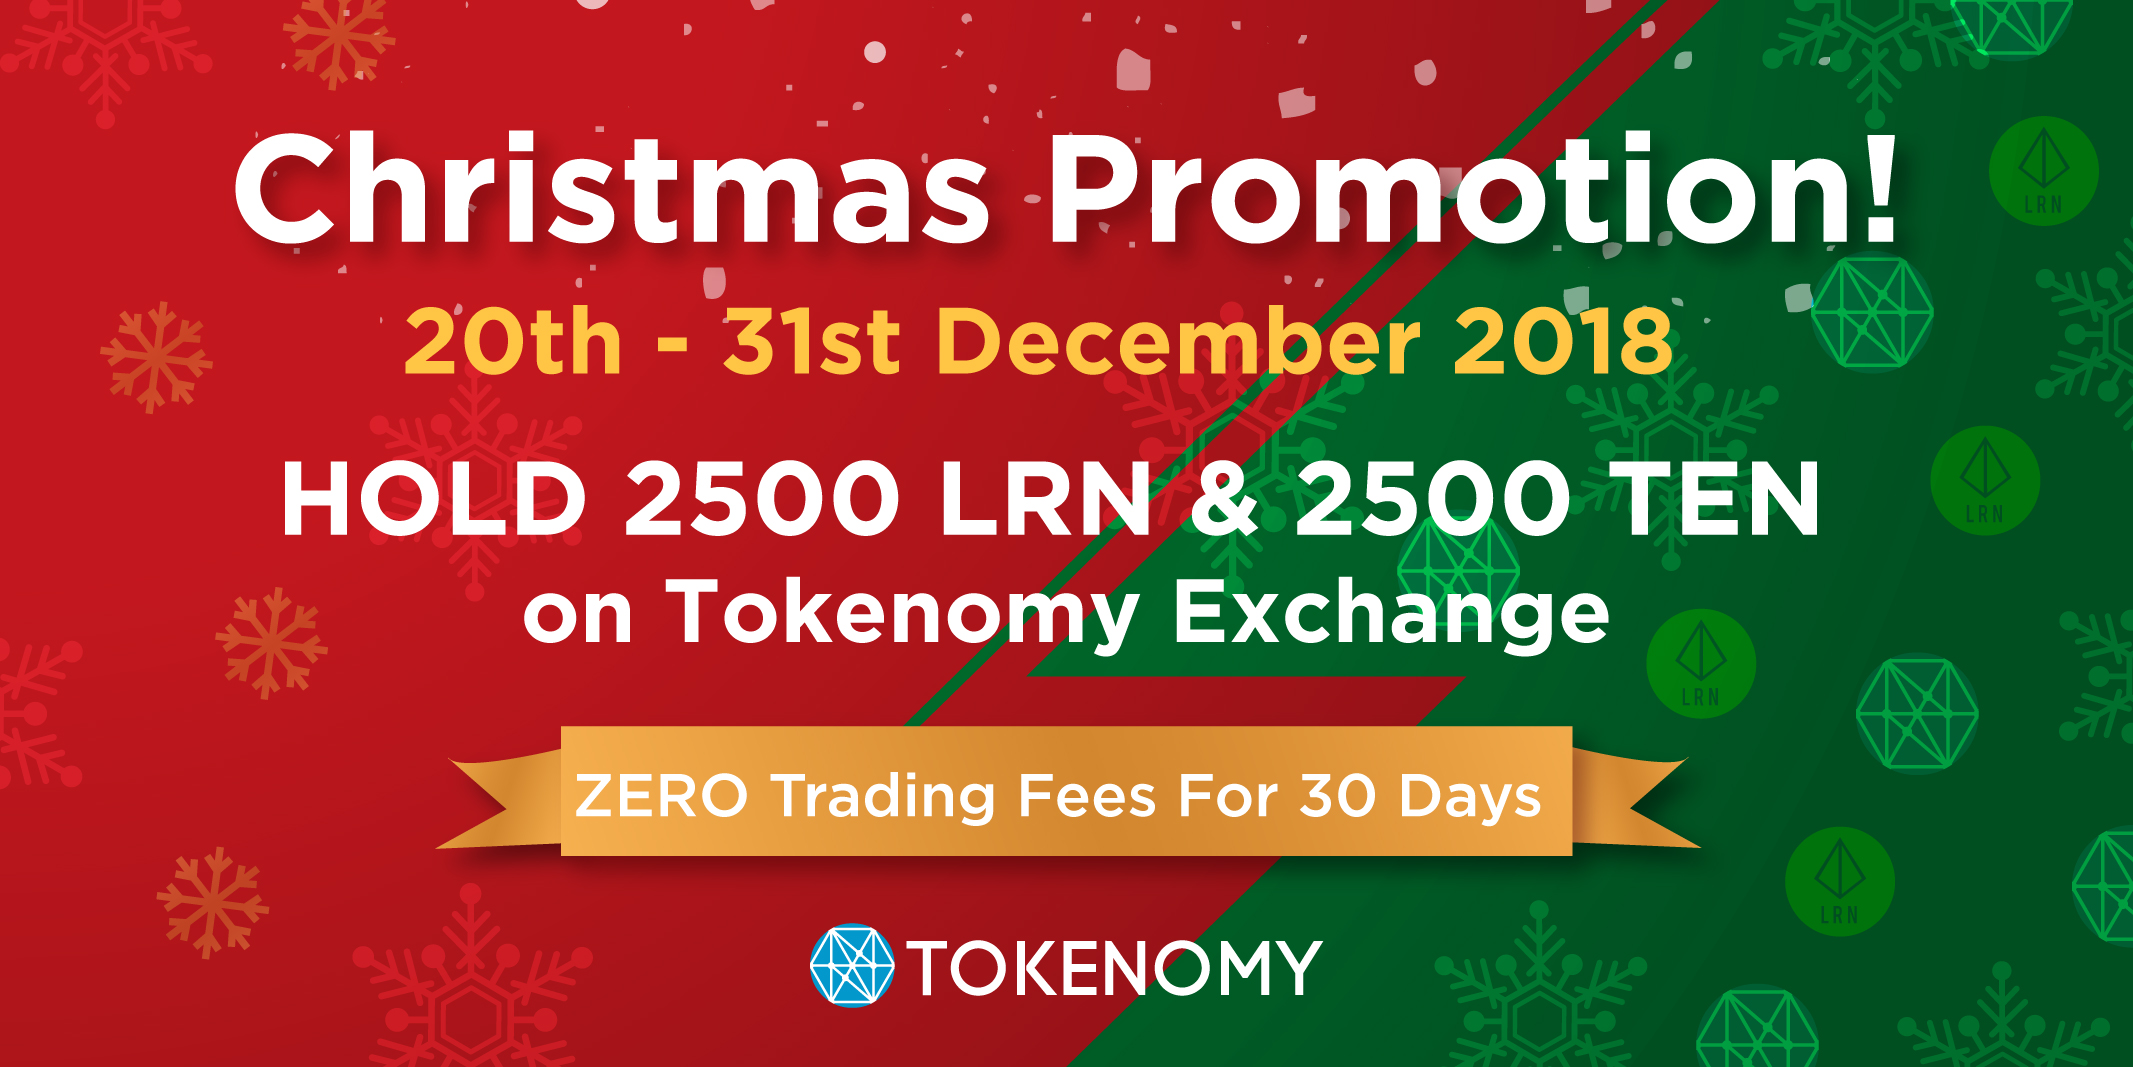 Tokenomy Exchange Christmas Promotion